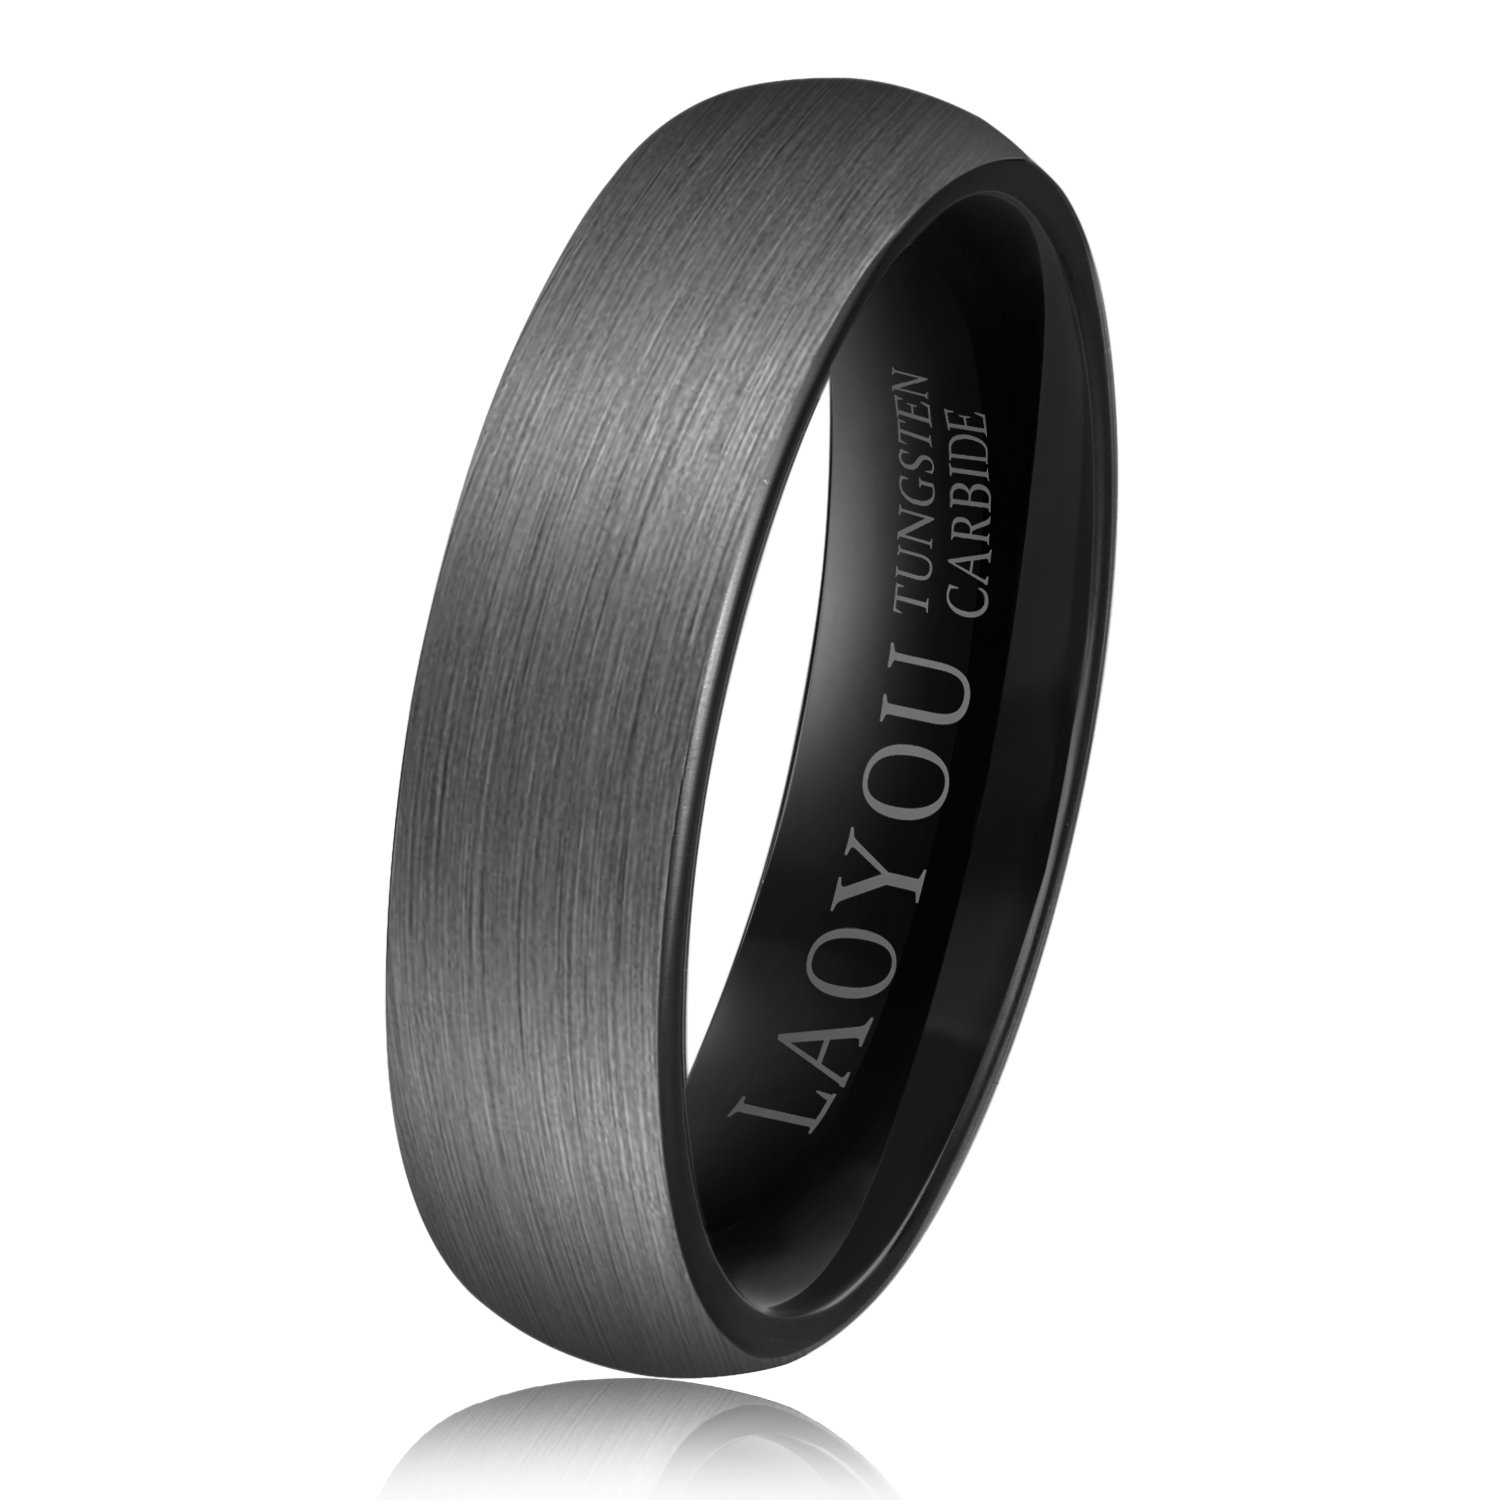 LAOYOU Tungsten Rings for Men Wedding Engagement Band Brushed Black 6mm Mens Ring Bands Comfort Fit Dome women carbide womens thin promise unisex him her male small pinky pinkie mom jewelry size 9.5